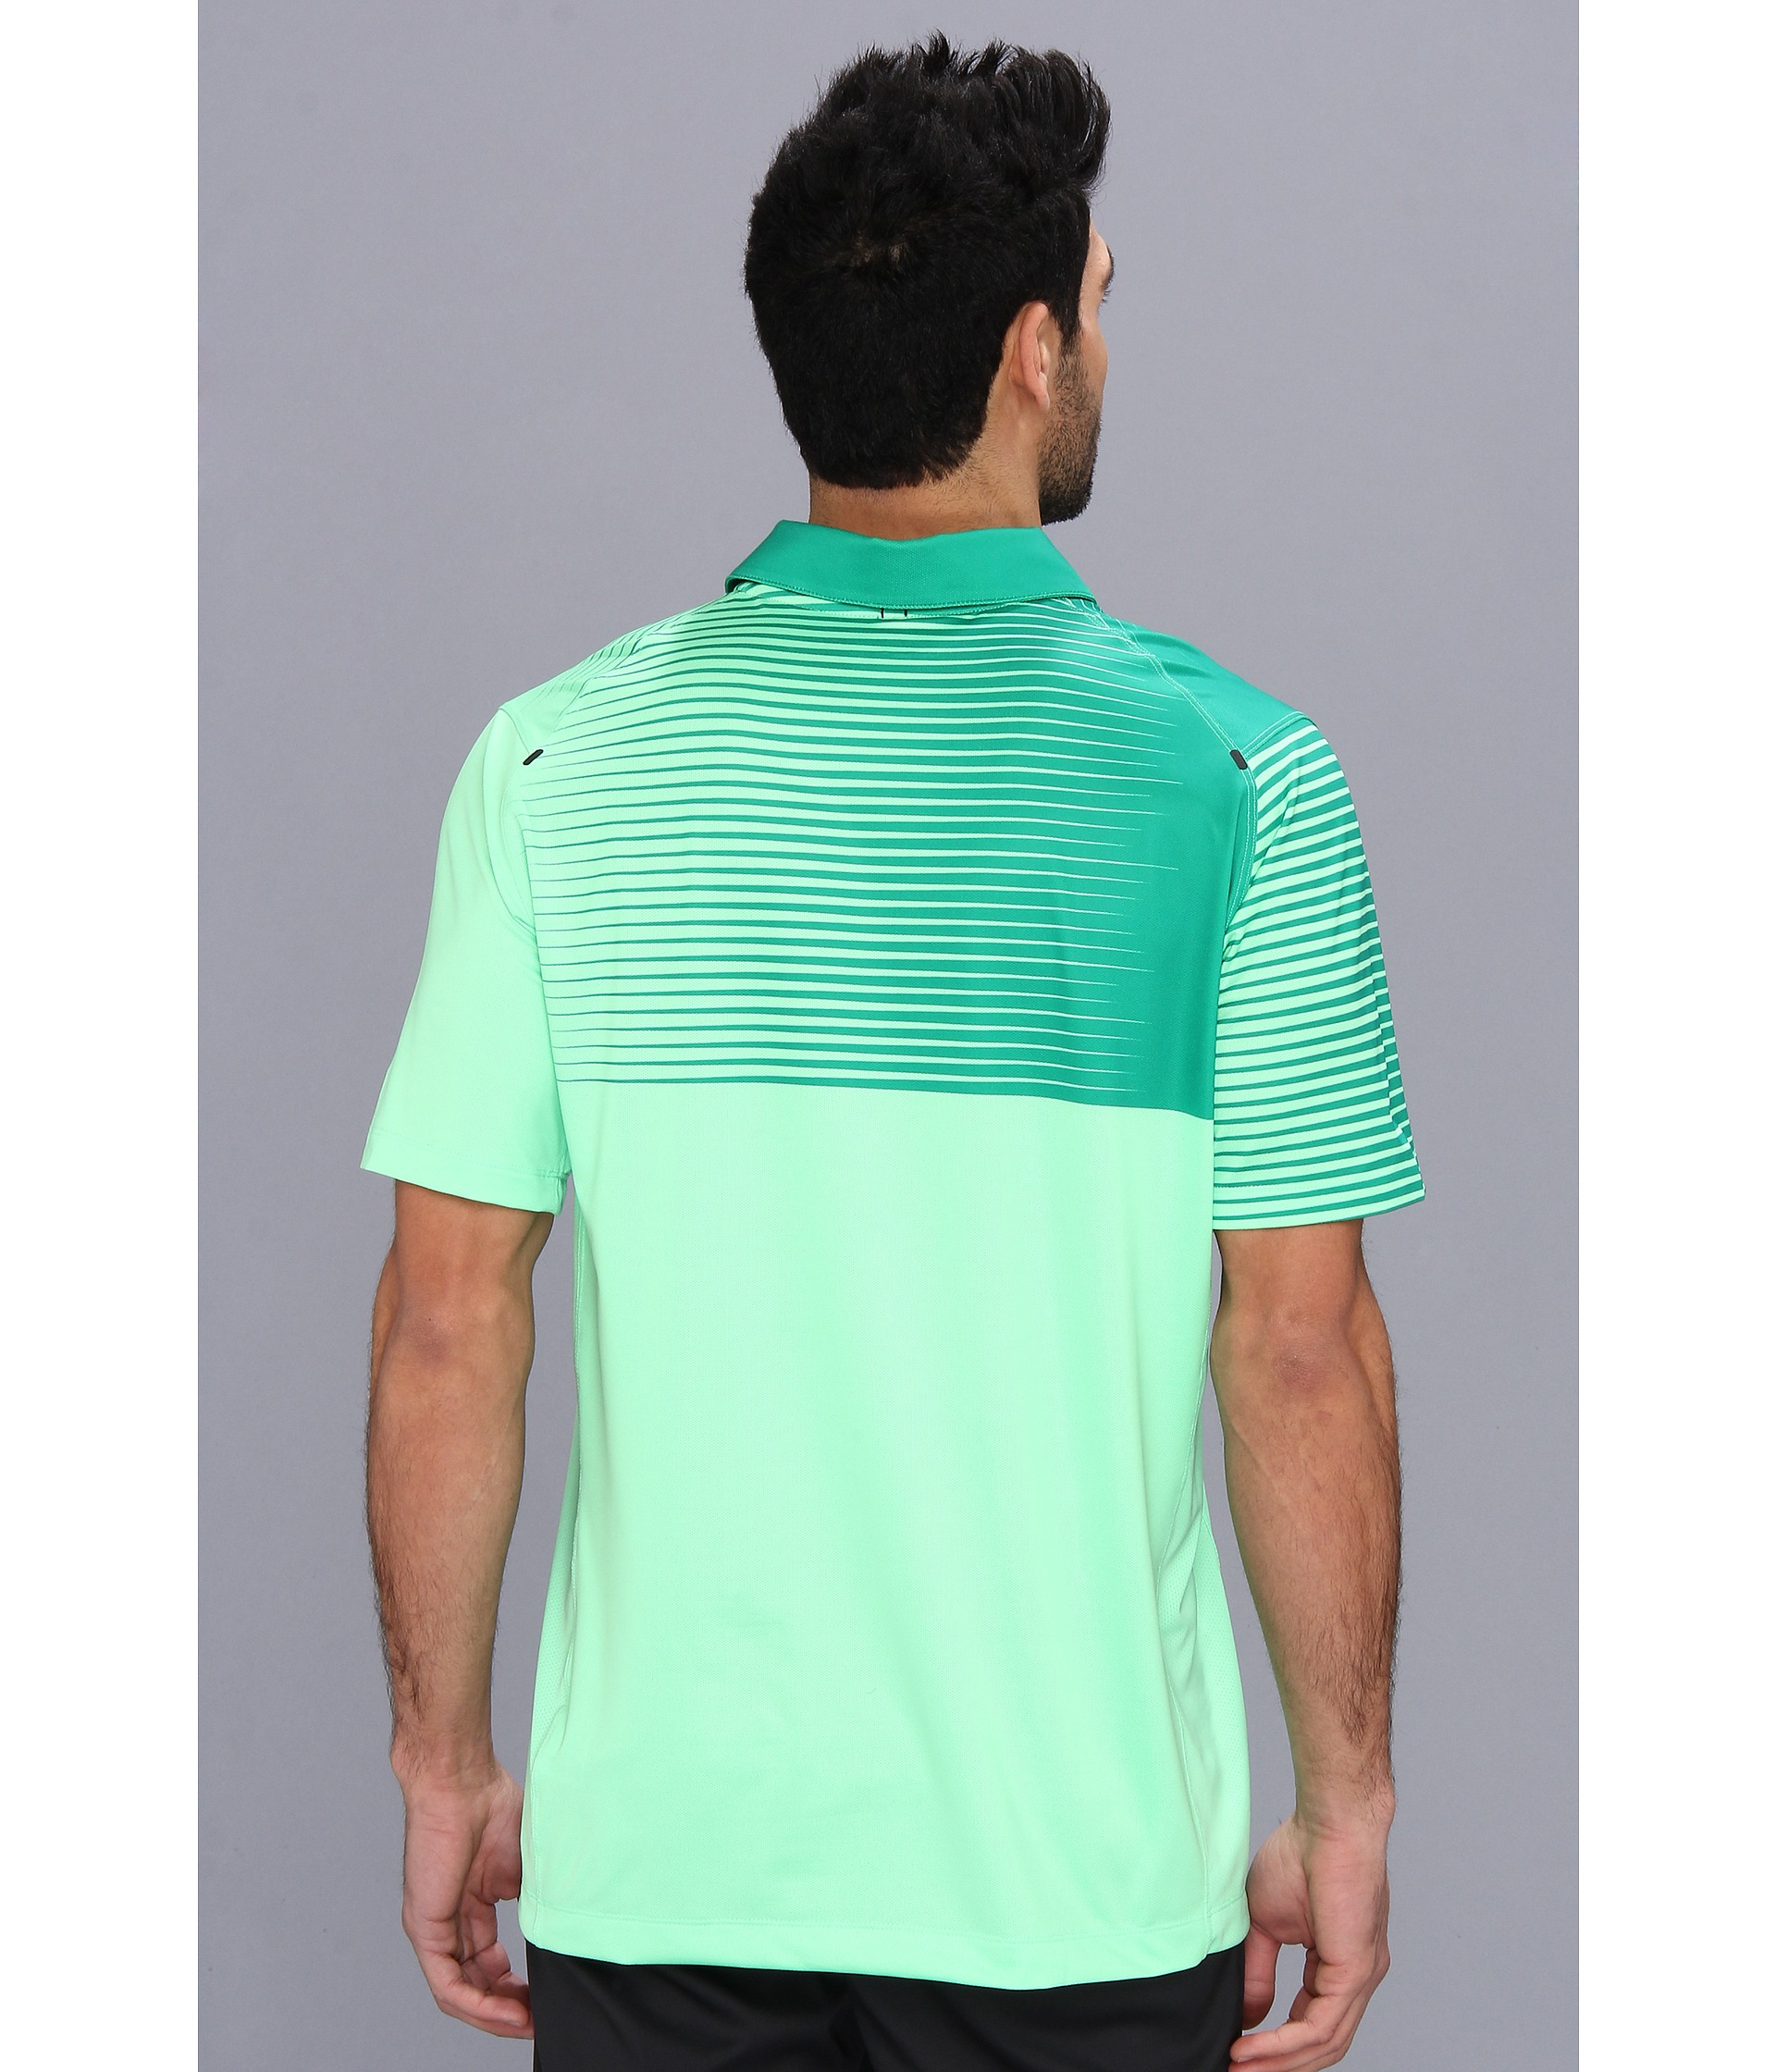 c13afb87 Nike Innovation Gradient Polo in Green for Men - Lyst